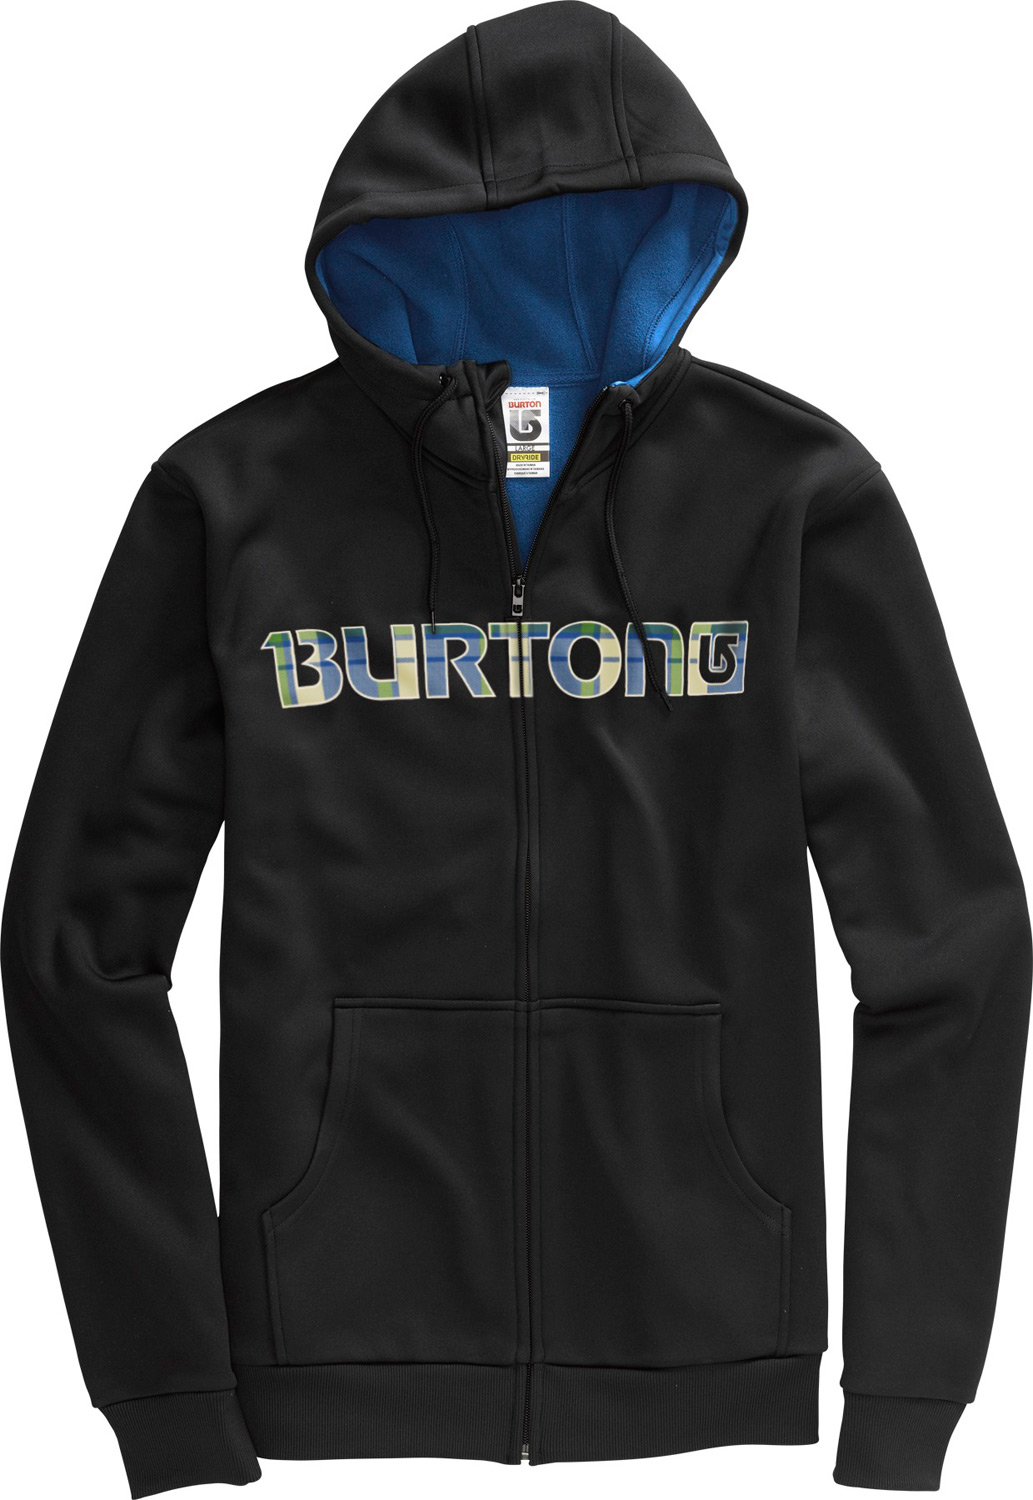 Snowboard The last hoodie you'll ever need. Ride, hike or hang without succumbing to the chilly side effects of cotton.Key Features of the Burton Bonded Hoodie: DRYRIDE Thermex Bonded Hard-Surface Fleece with Brushed Backer Kangaroo Hand Warmer Pockets Ribbed Cuffs and Hem Hidden Side Seam Stash Pocket Word Marker or Process Logo Graphics S-XL - $79.95